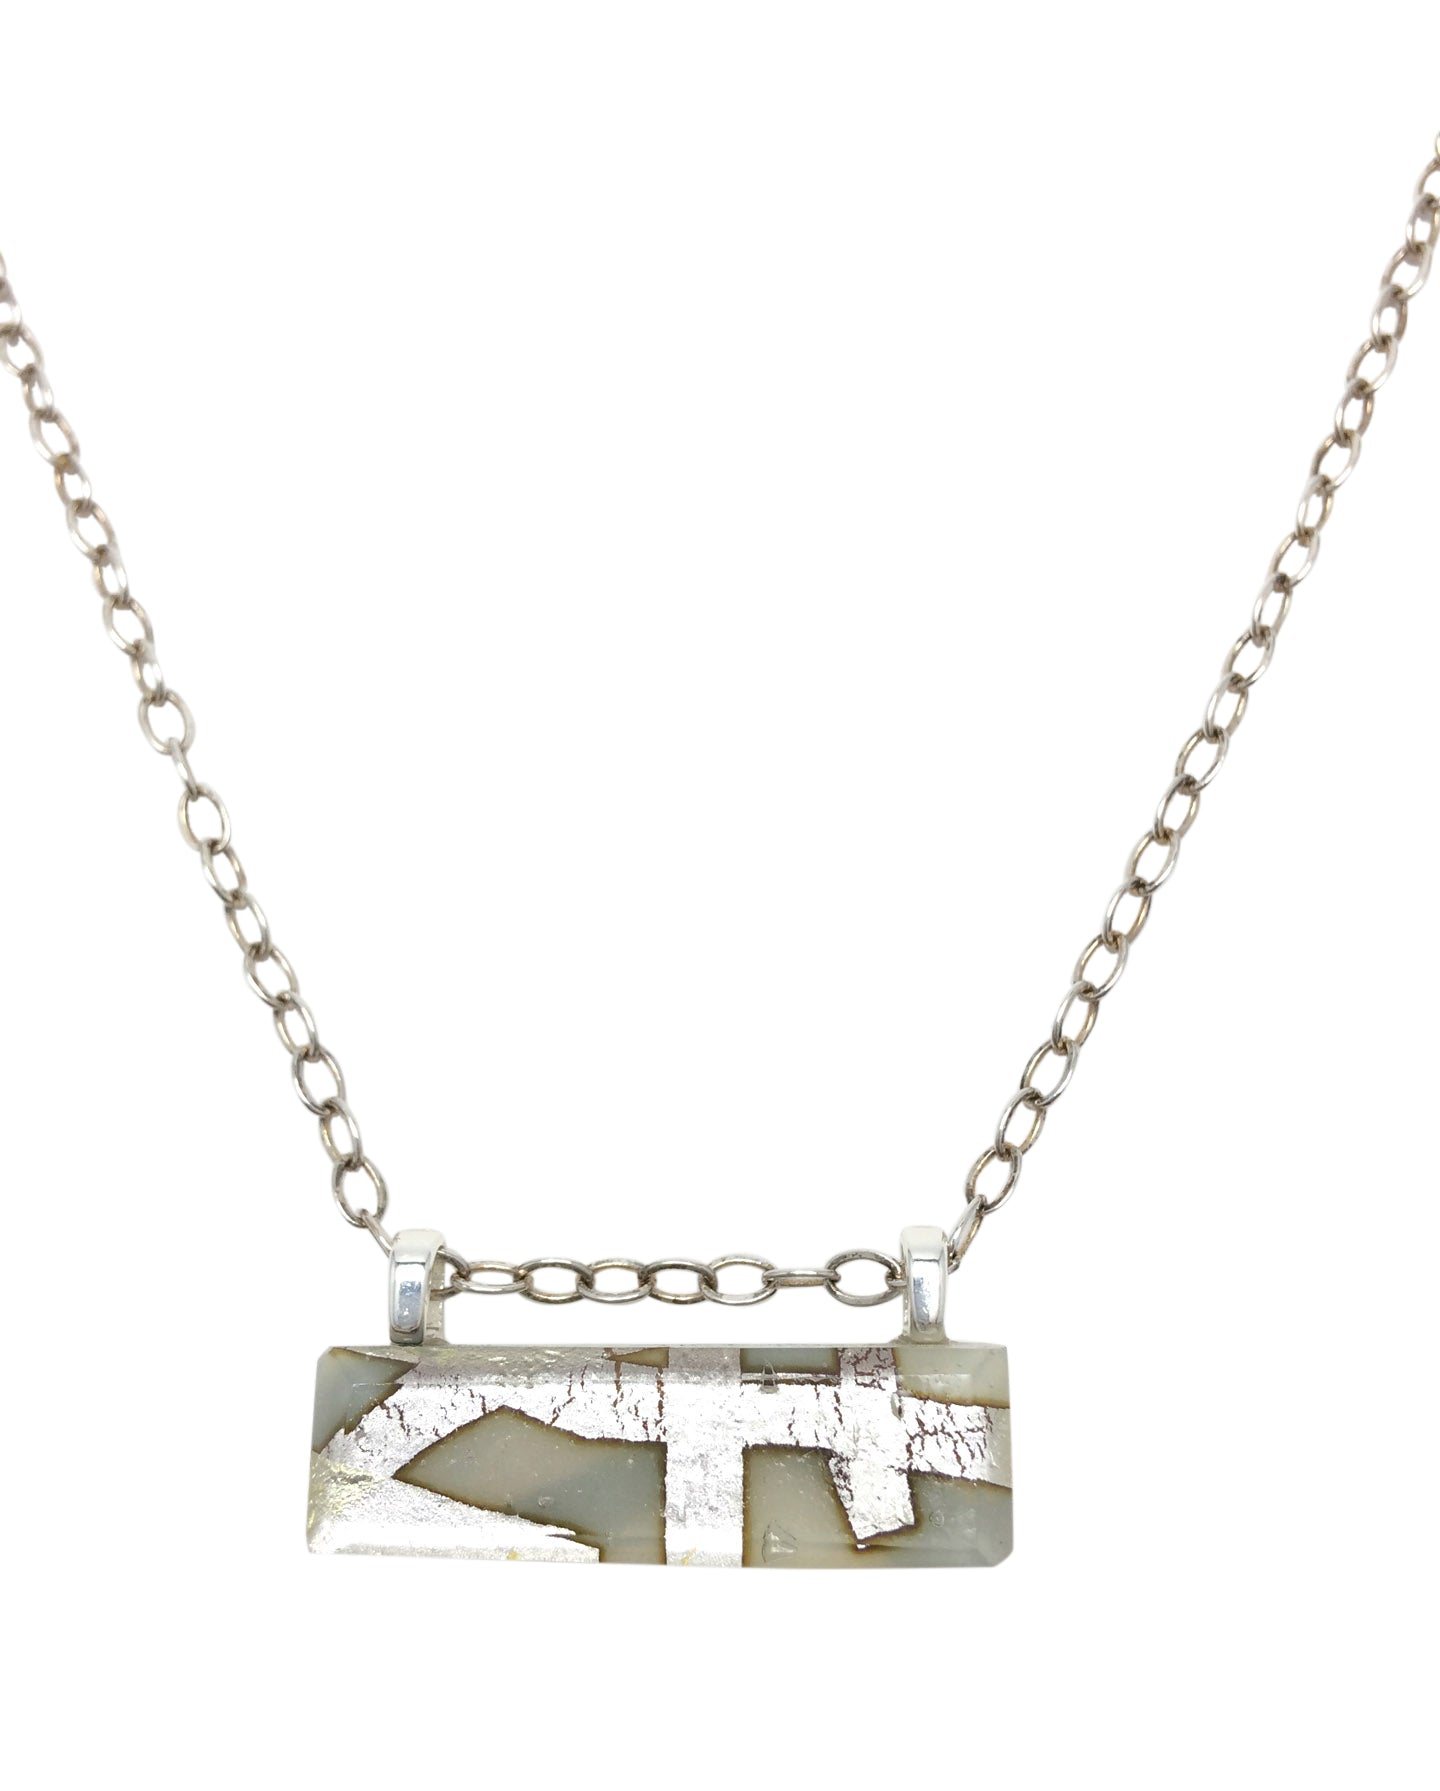 Cream Horizontal Bar Necklace with Sterling Silver Chain